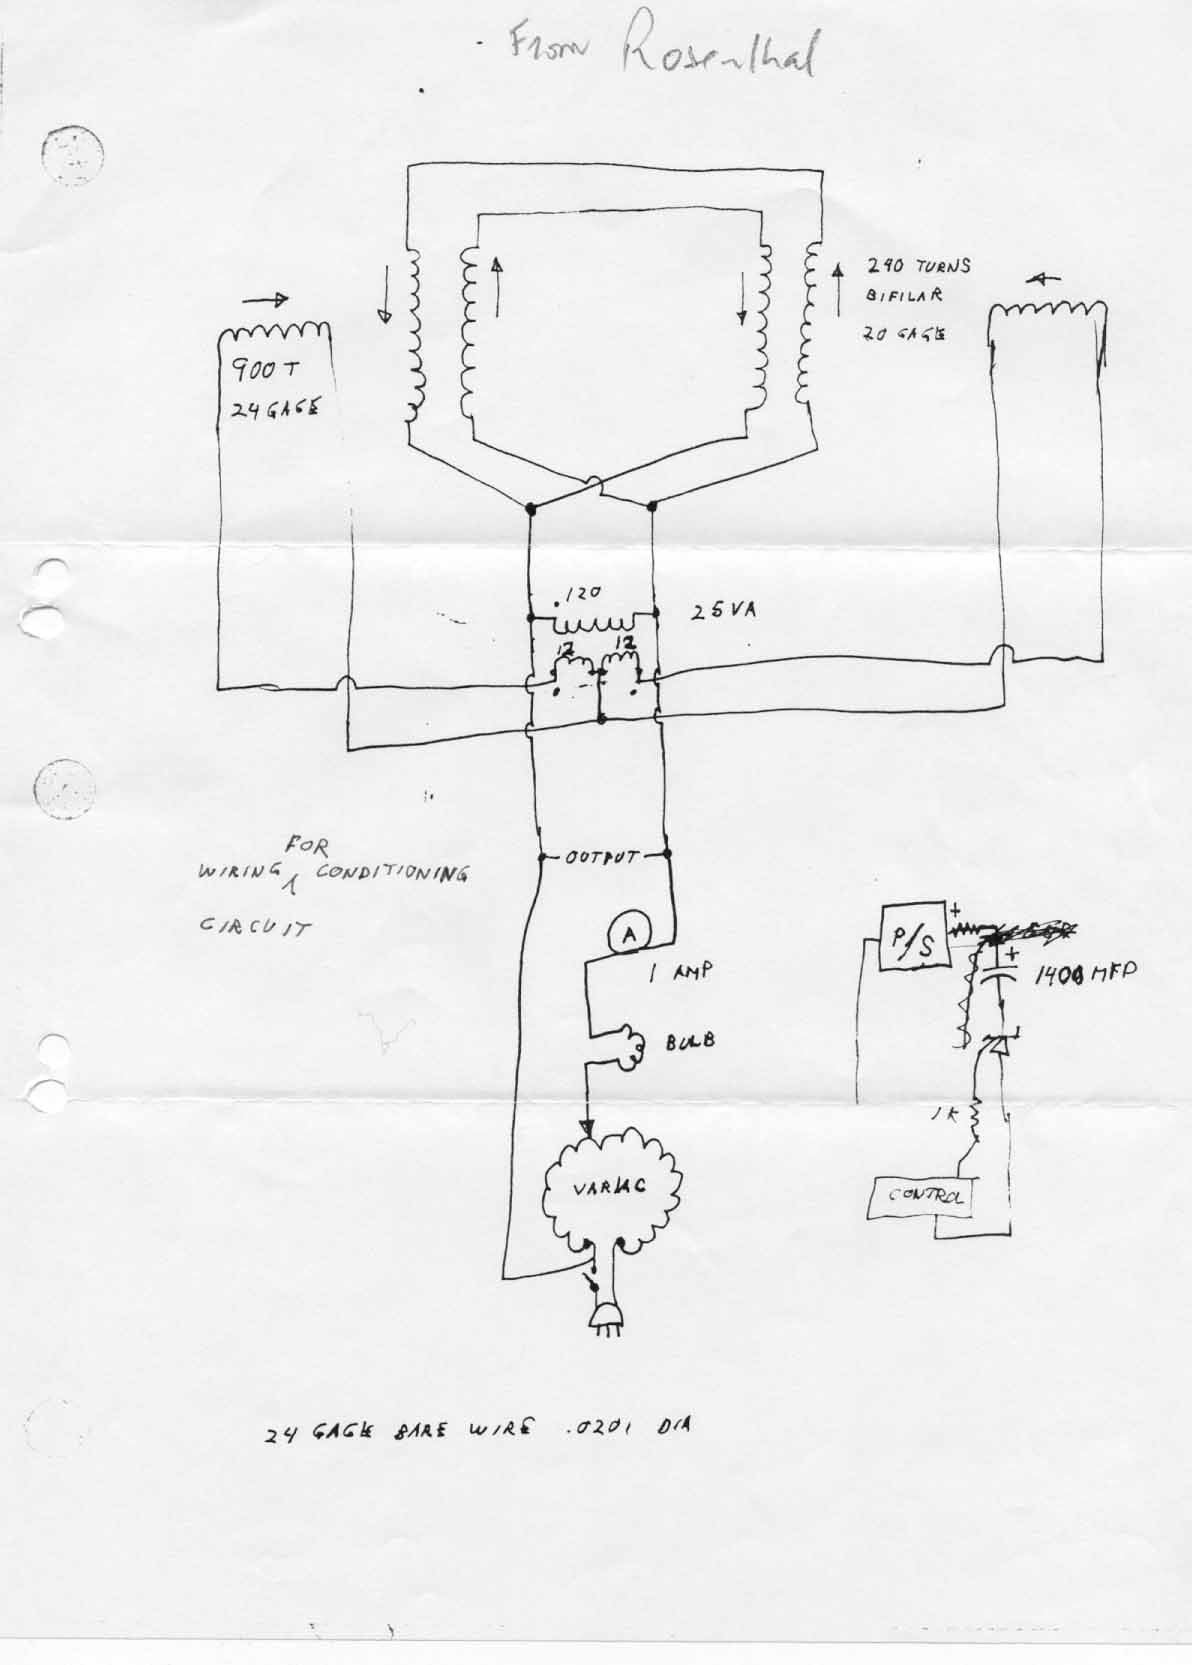 update s home hyiq Bedini Circuit Diagram the operation is stopped by momentary interruption of power to the power coils walter rosenthal did also supply us with this schematic